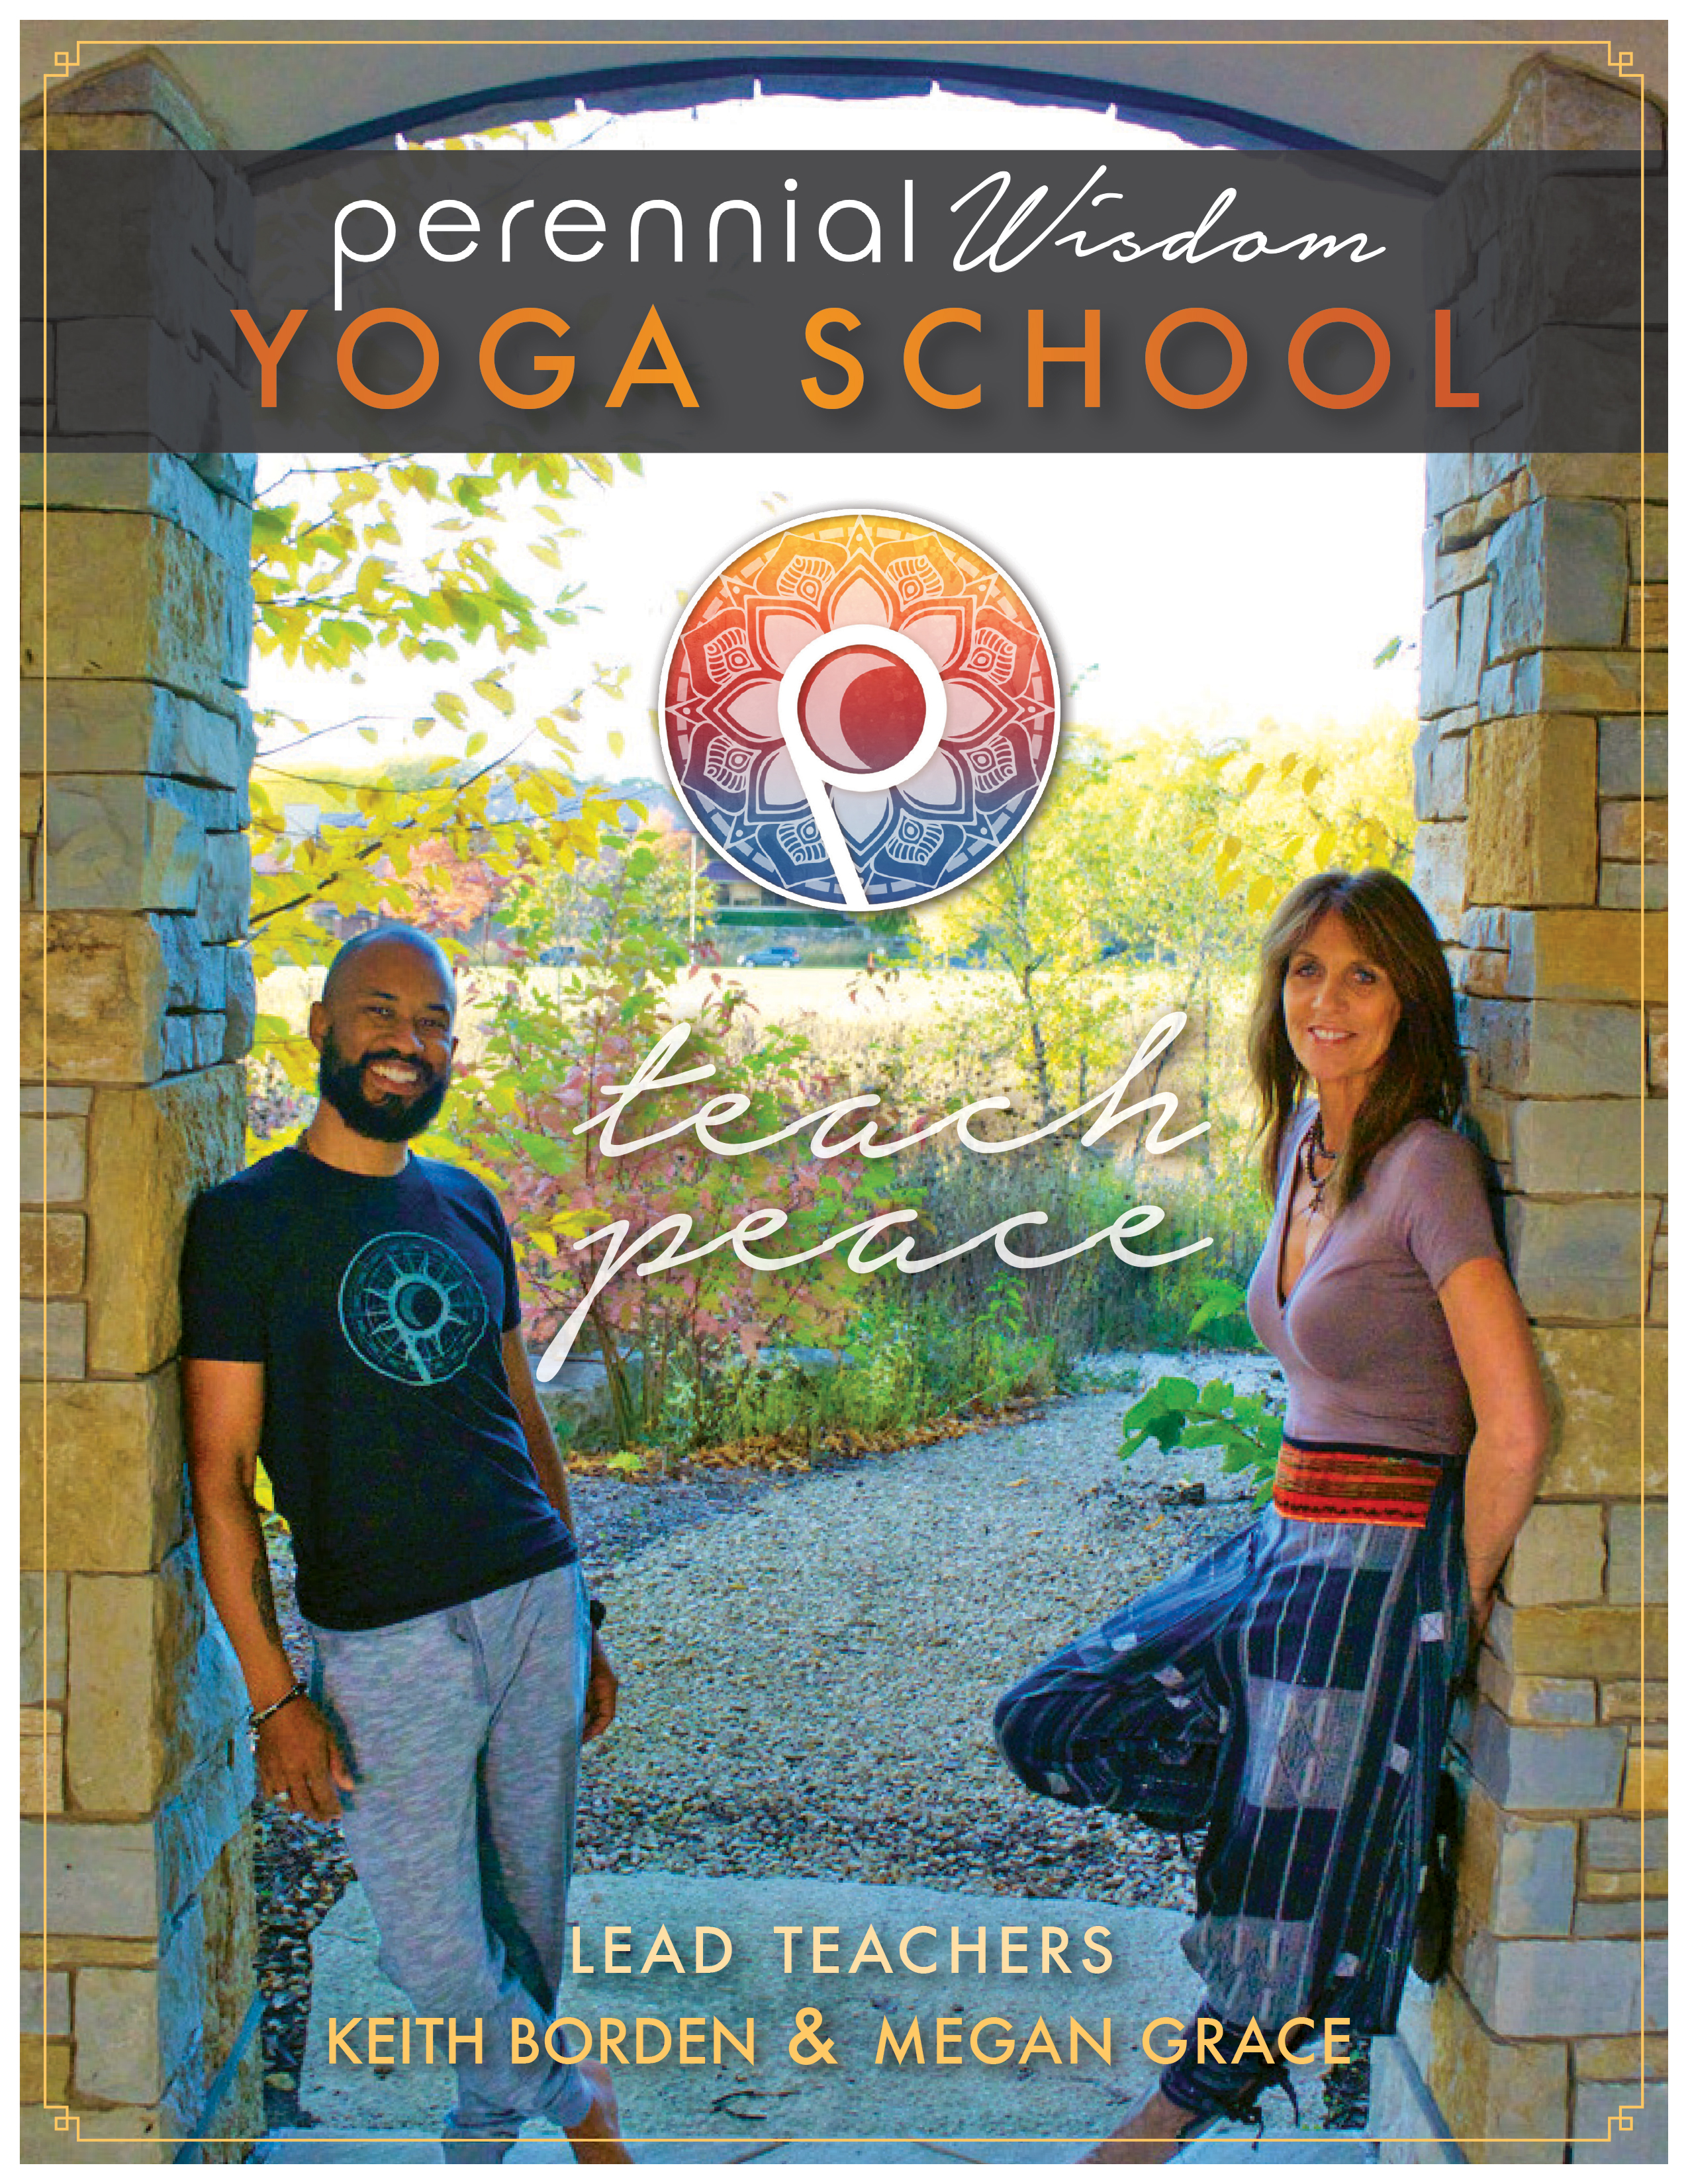 YOGAschool2018_copy3